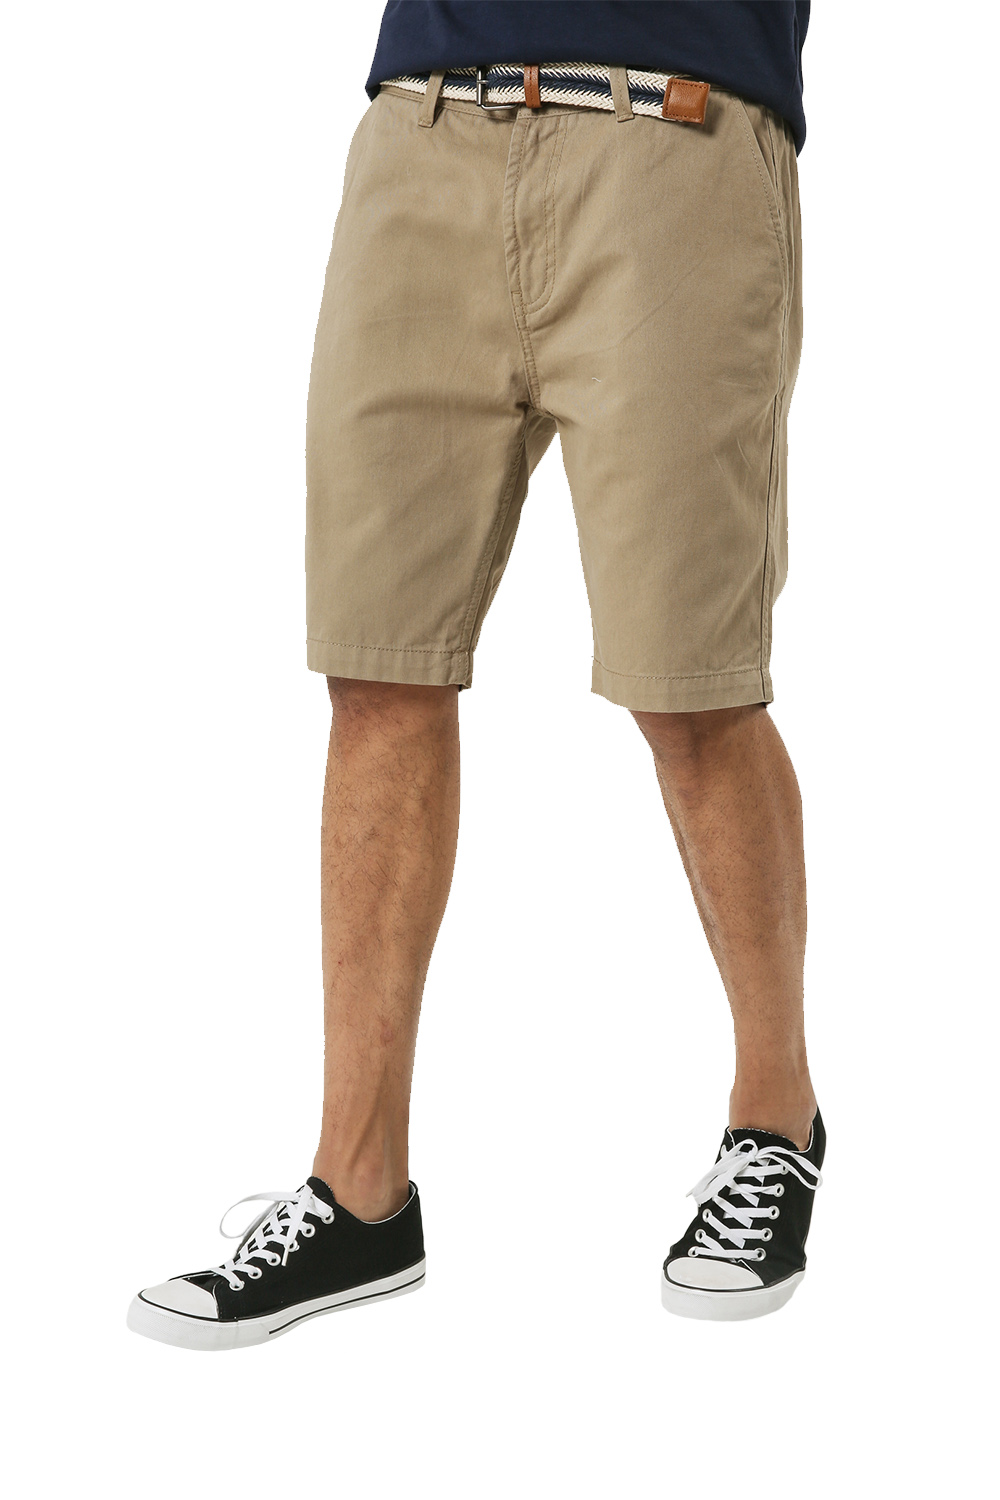 Threadbare-Mens-Slim-Fit-Belted-Chino-Shorts-Summer-Casual-Cotton-Smart-Bottoms thumbnail 25